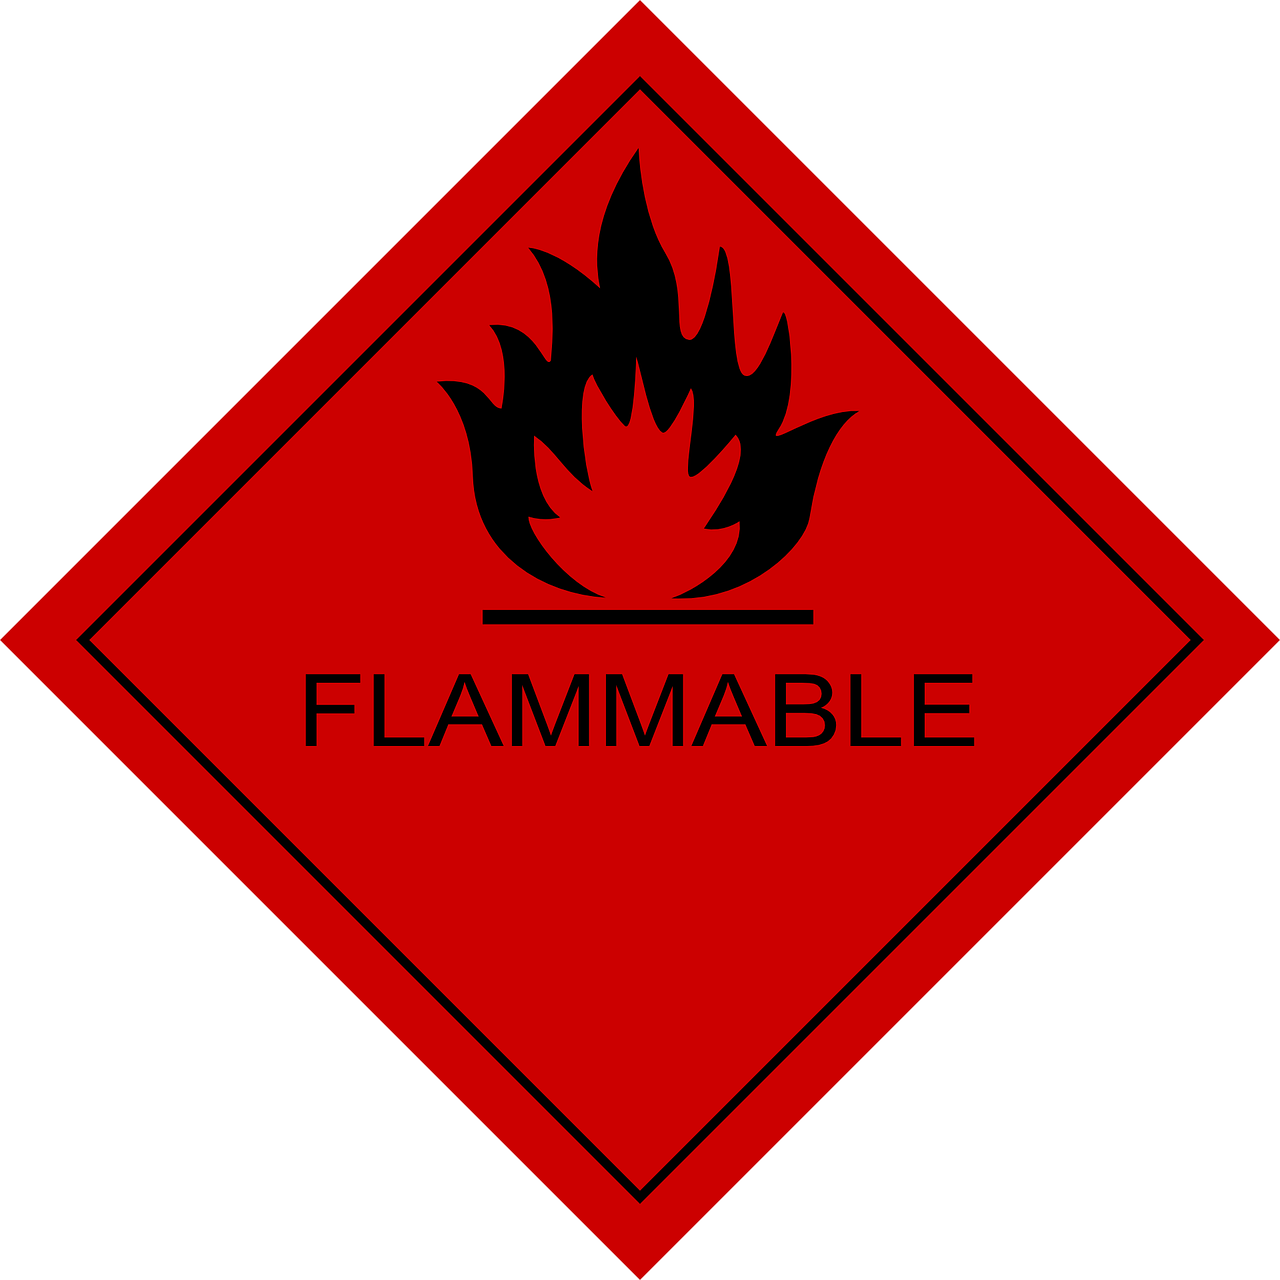 flammable-155979_1280.png